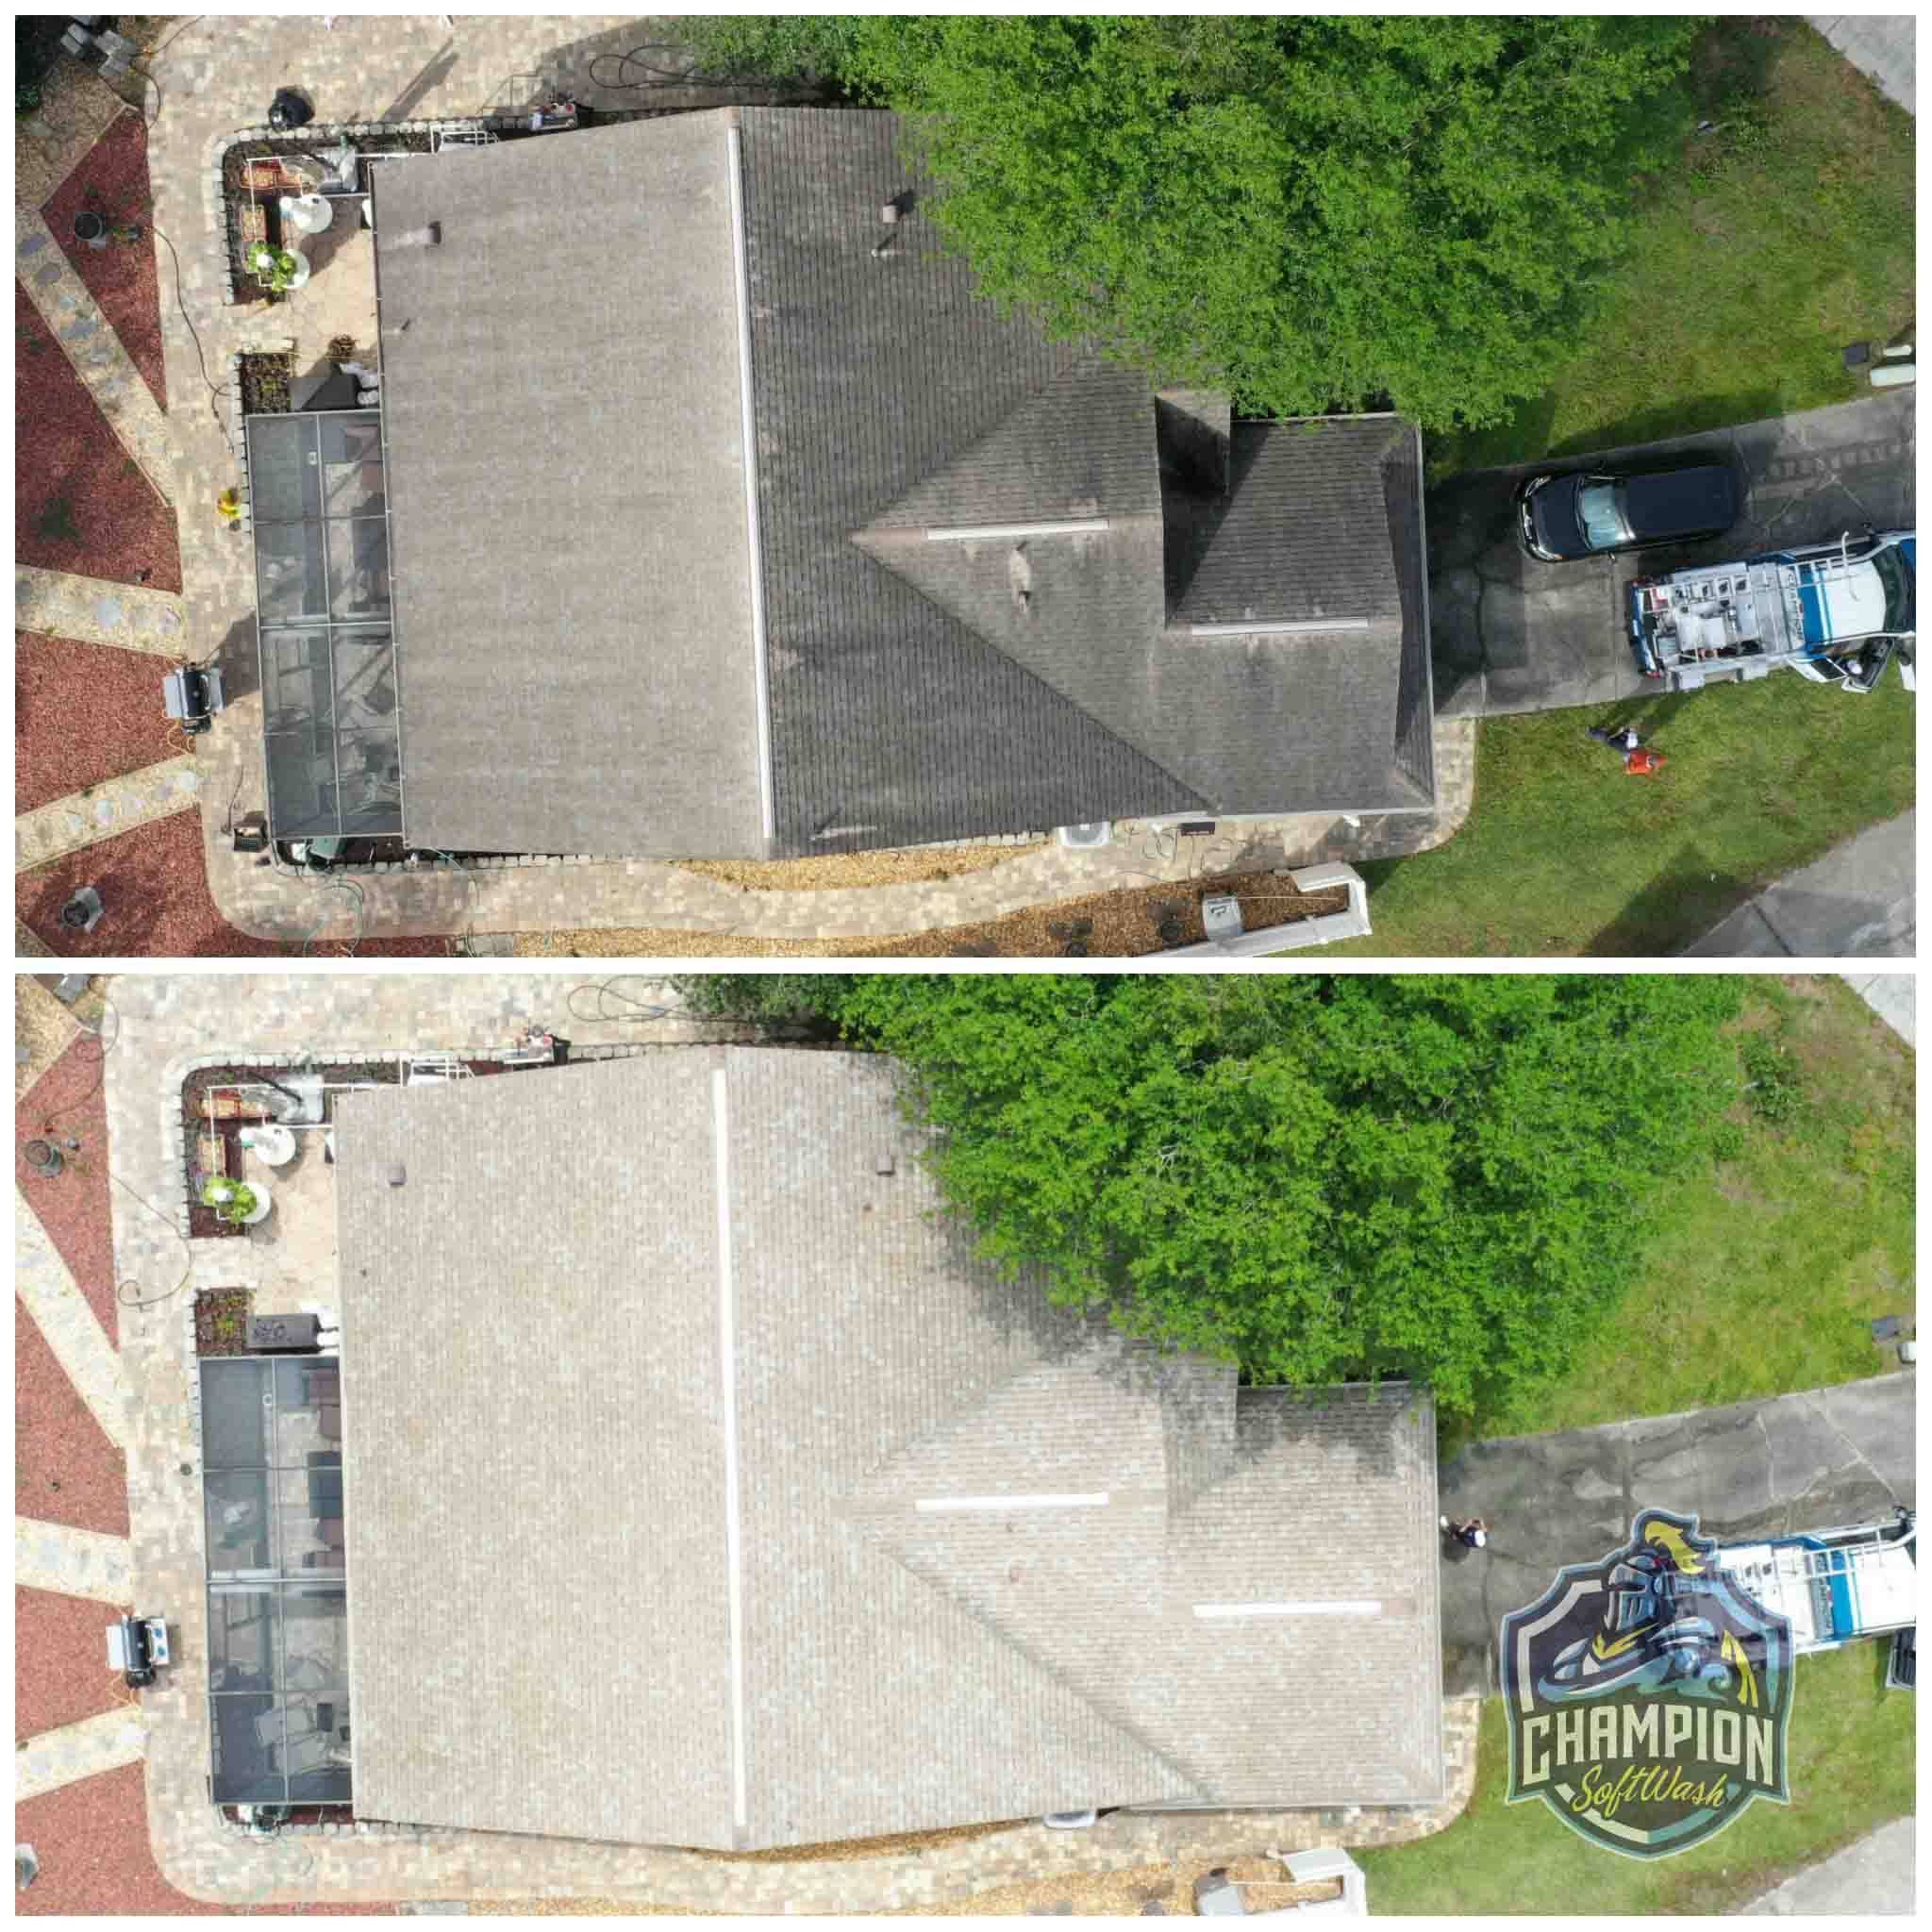 Roof Cleaning for realtor listing in Apopka FL. Shingle Roof cleaning, skylight cleaning, flat roof cleaning